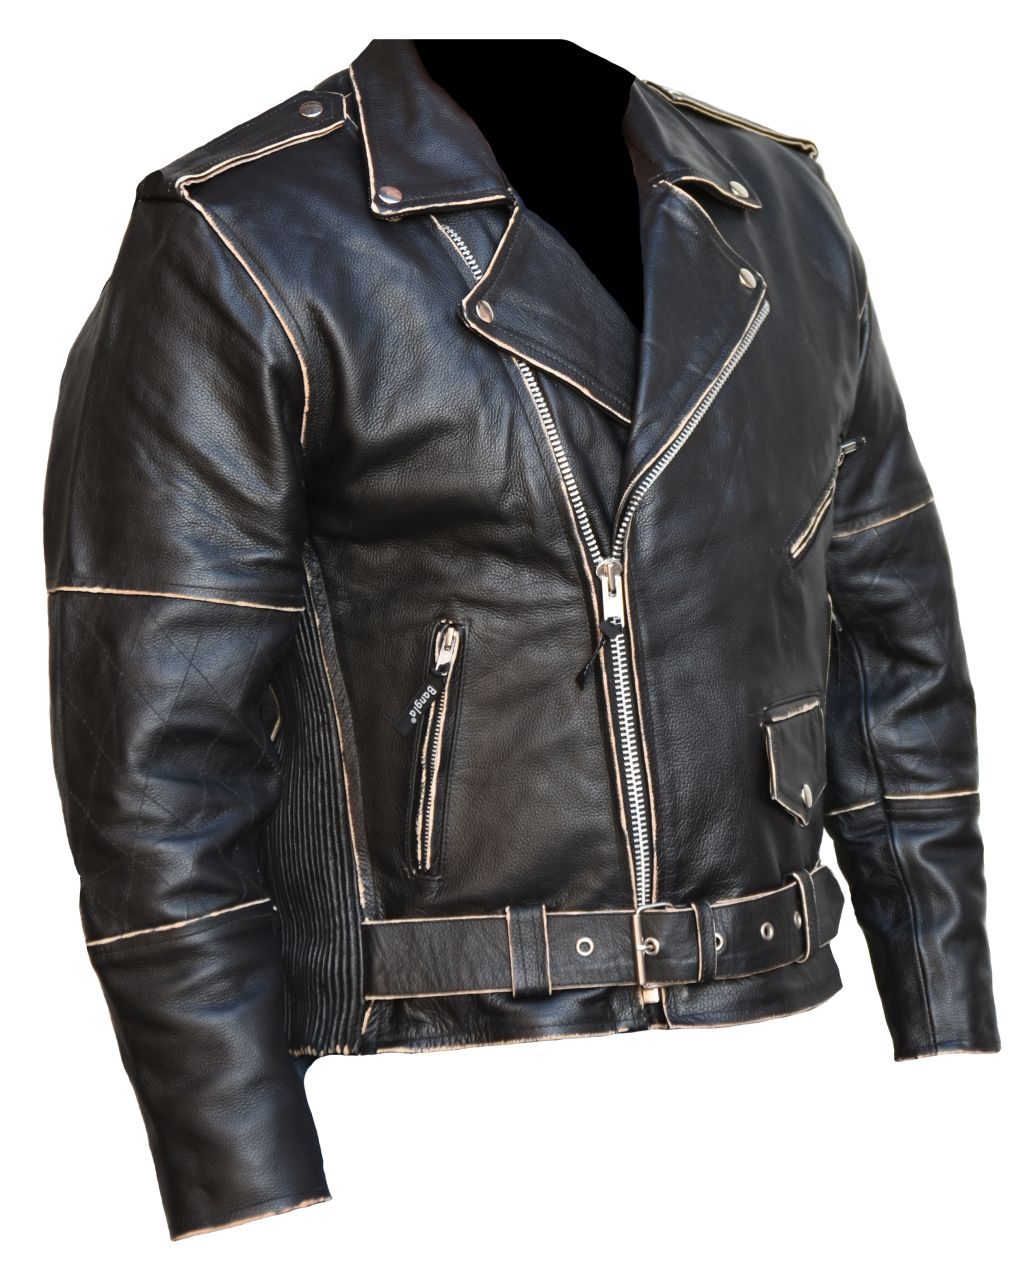 Bangla Herren Lederjacke Retro-Look Motorrad Schwarz Chopper Antik S  - 6 XL